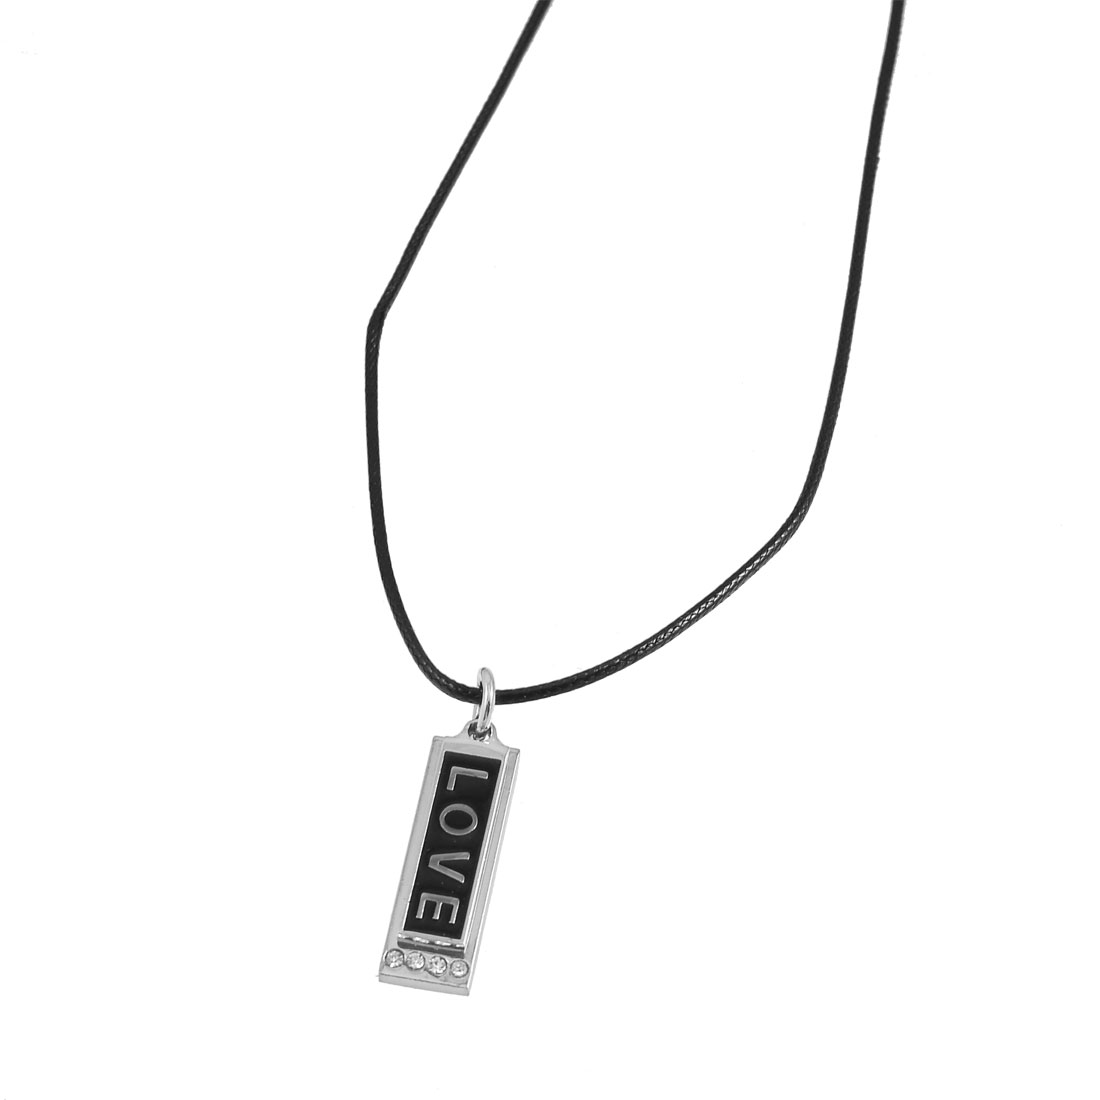 Lover Rectangle Pendant Adjustable String Necklace Black Dark Gray Pair